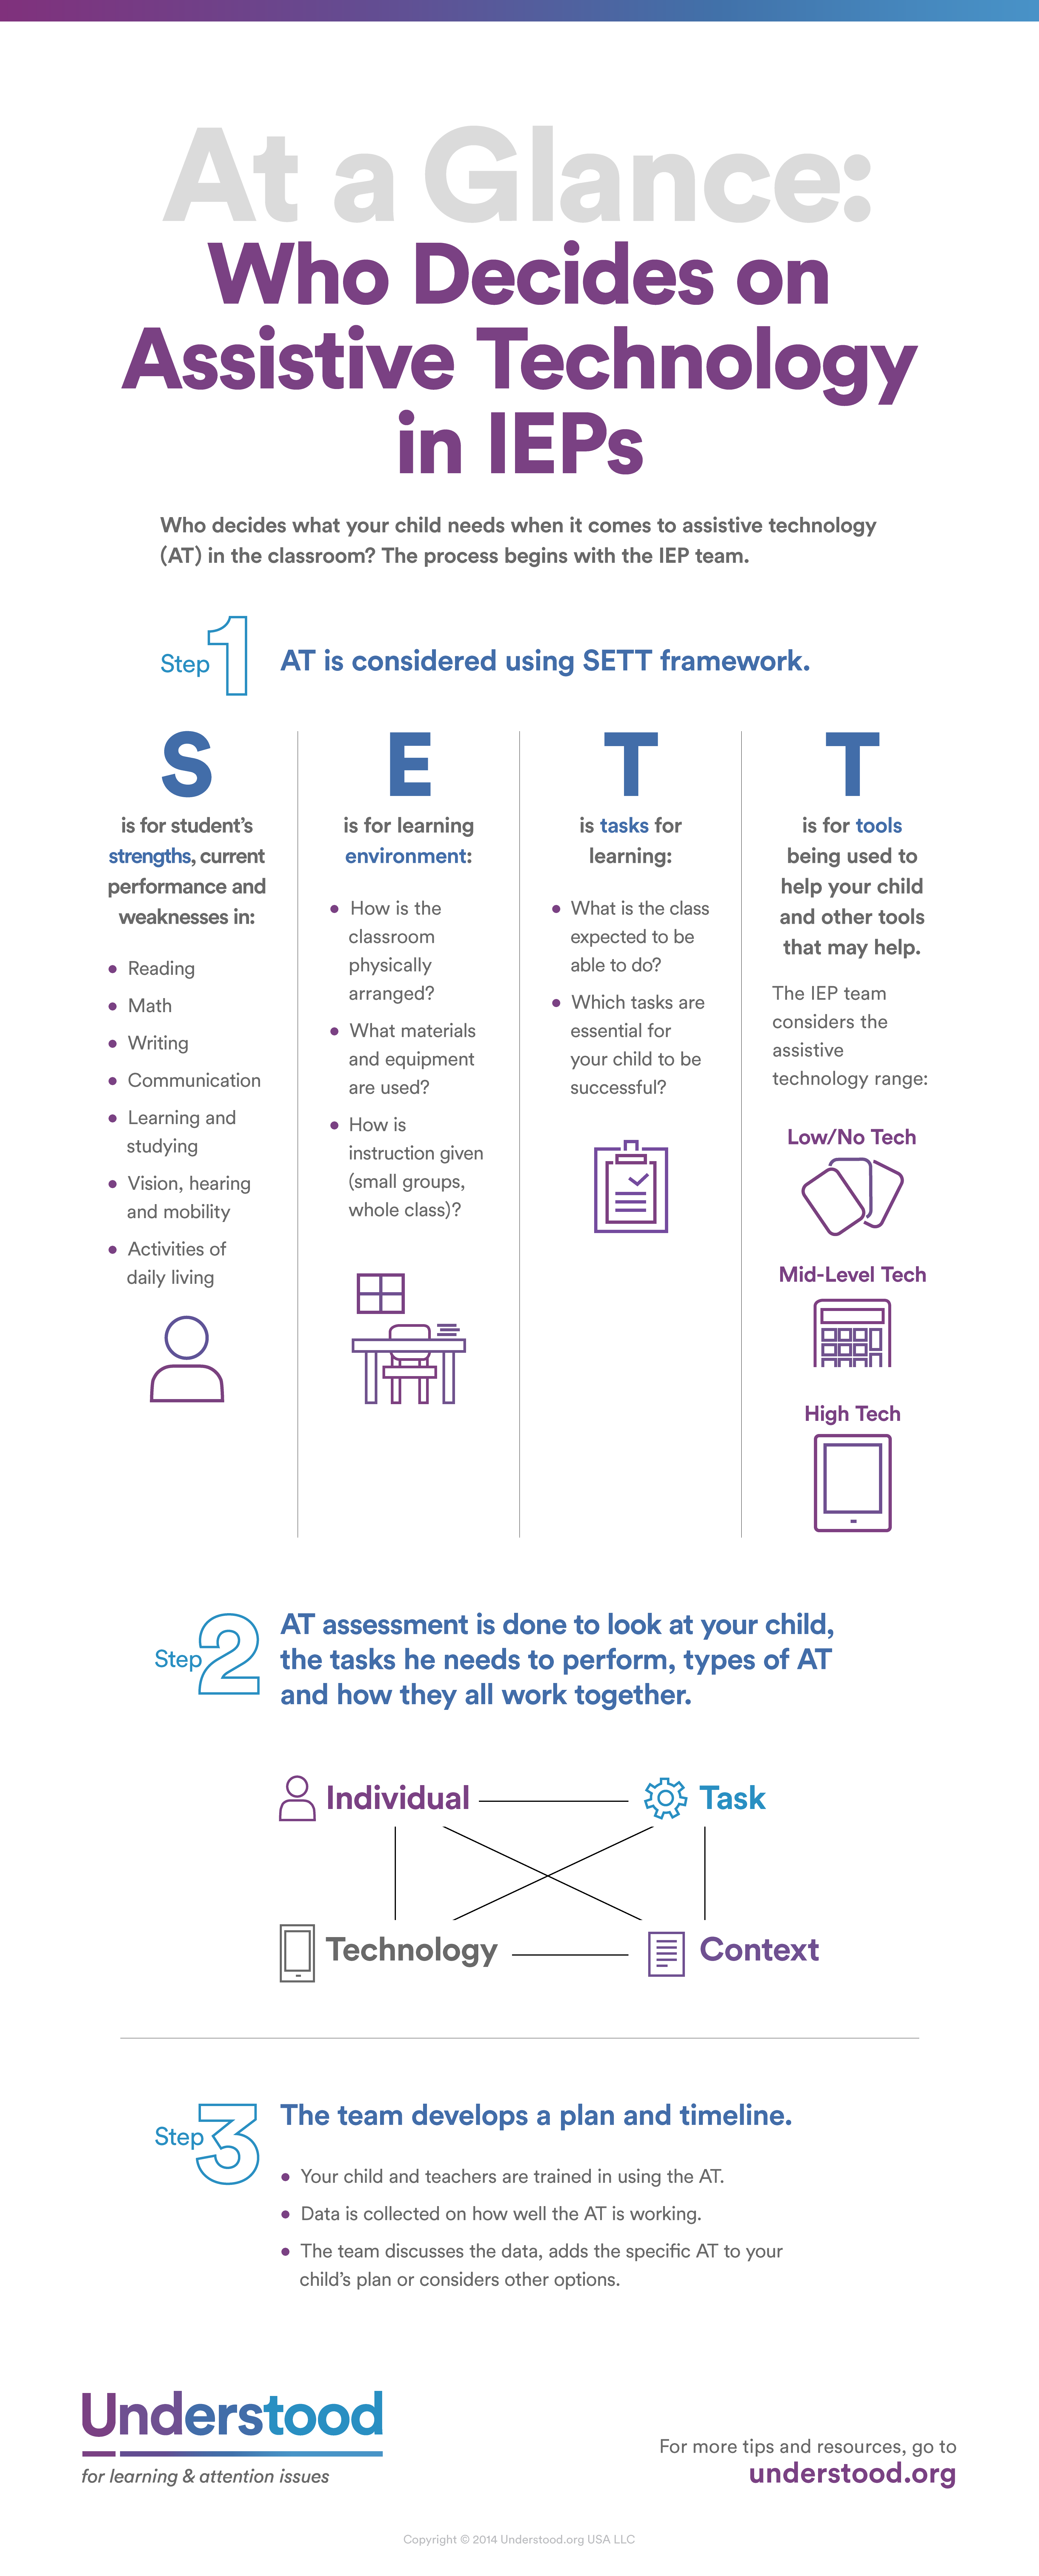 At A Glance How The Iep Team Decides On Assistive Technology Assistive Technology Teaching Iep